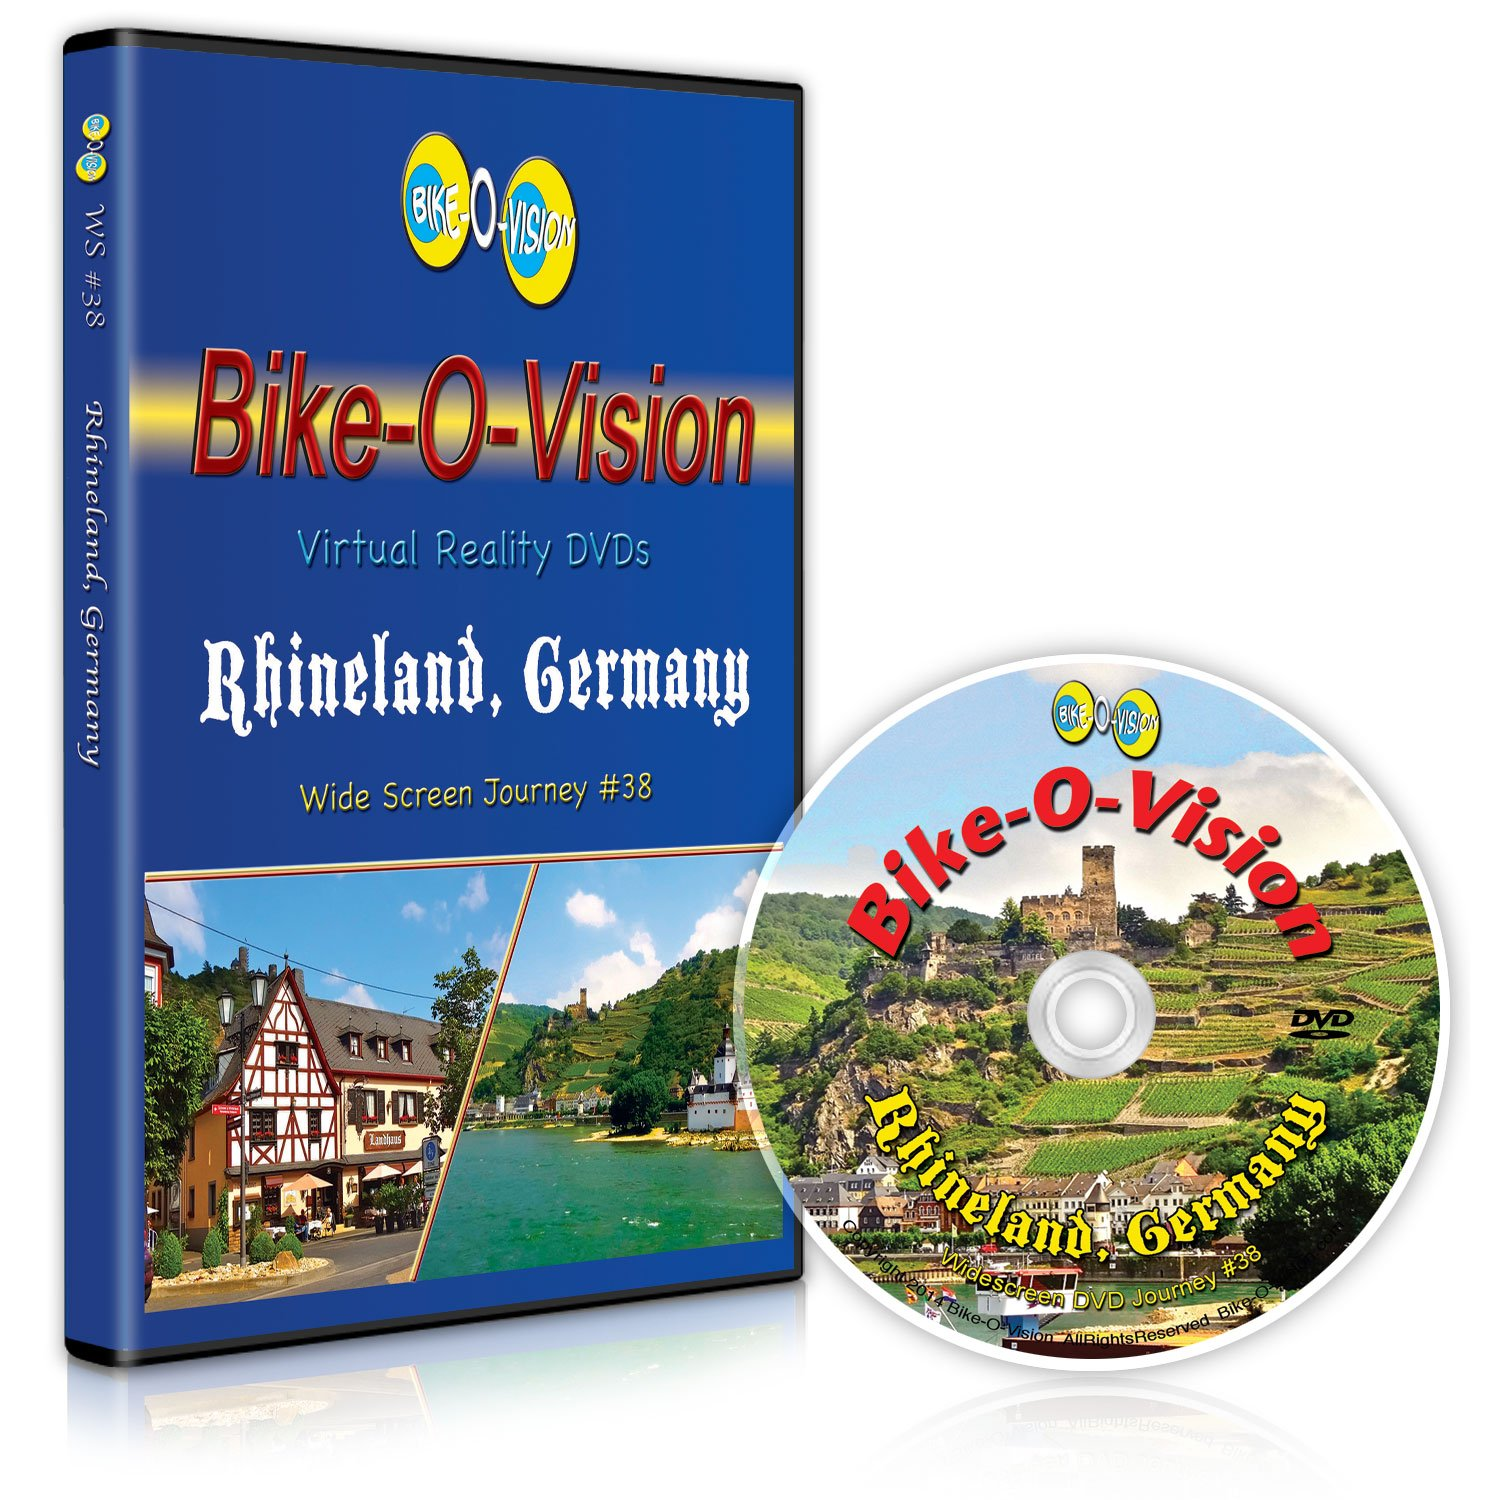 Bike-O-Vision Cycling Video: Rhineland Max 84% OFF BR Germany Limited time trial price - #38